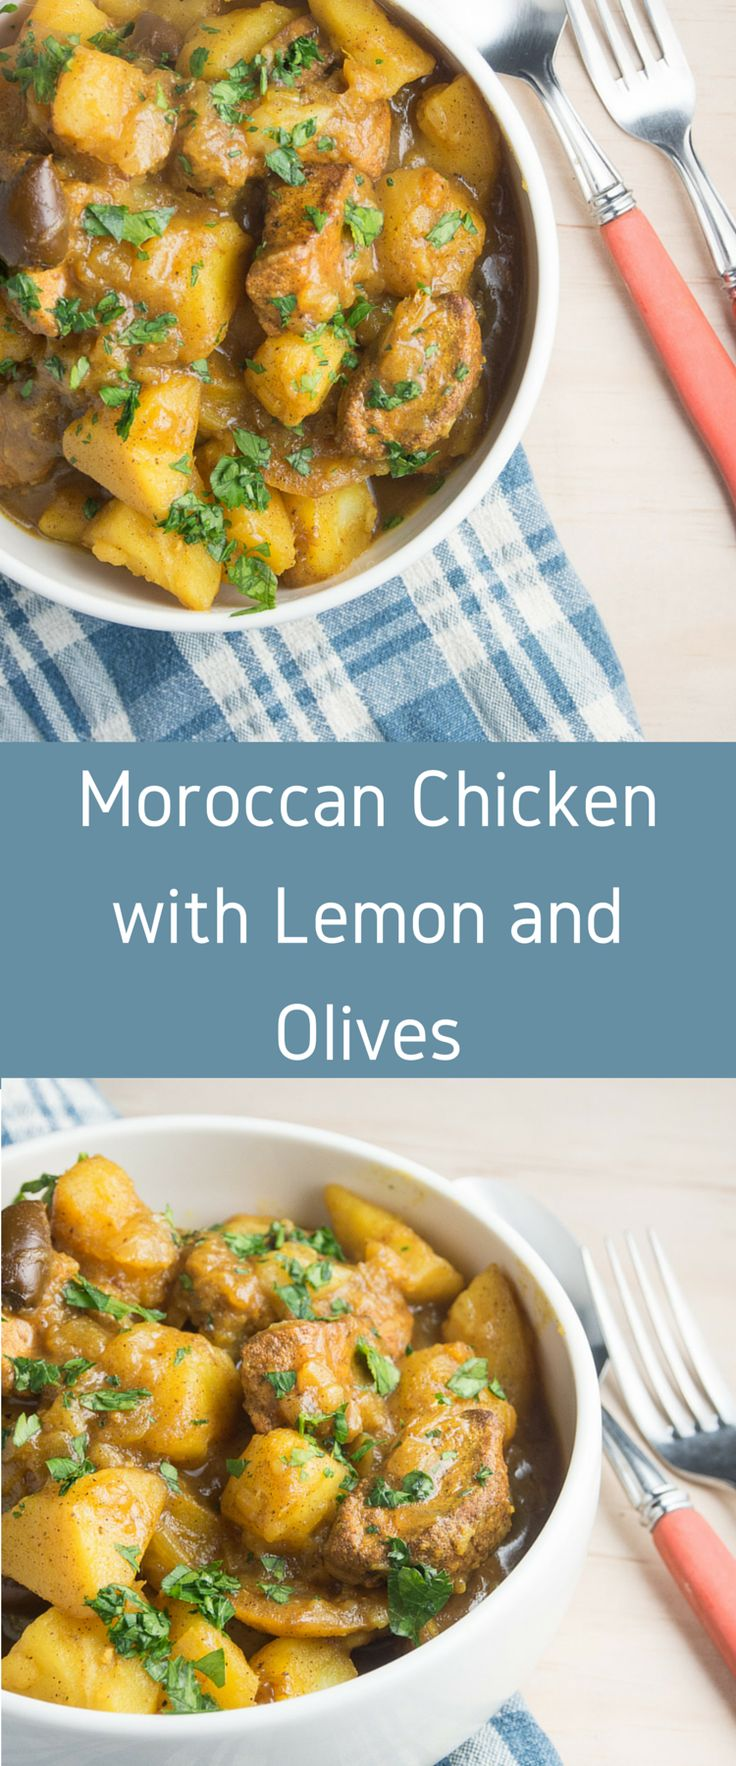 Moroccan Chicken with Lemon and Olives.  One pot recipe full of citrus flavours